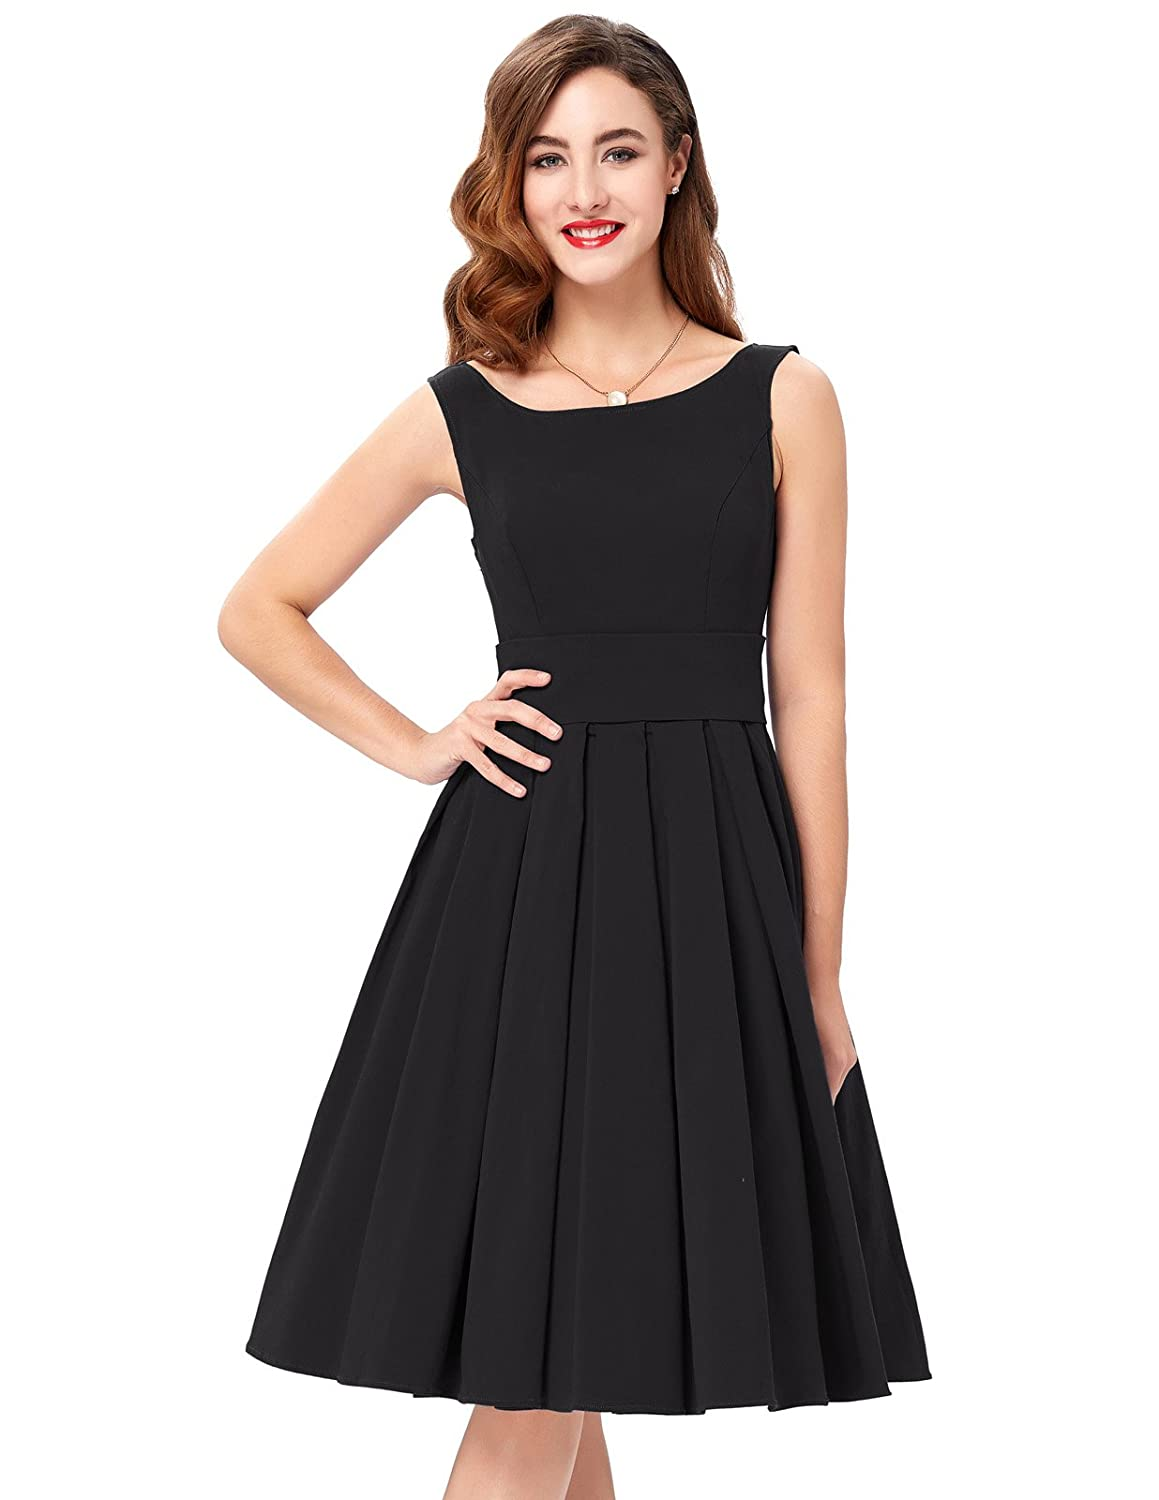 PAUL JONES Belle Poque Womens Audrey Hepburn 50s Dress Sleeveless Tea Dress BP091 at Amazon Womens Clothing store: